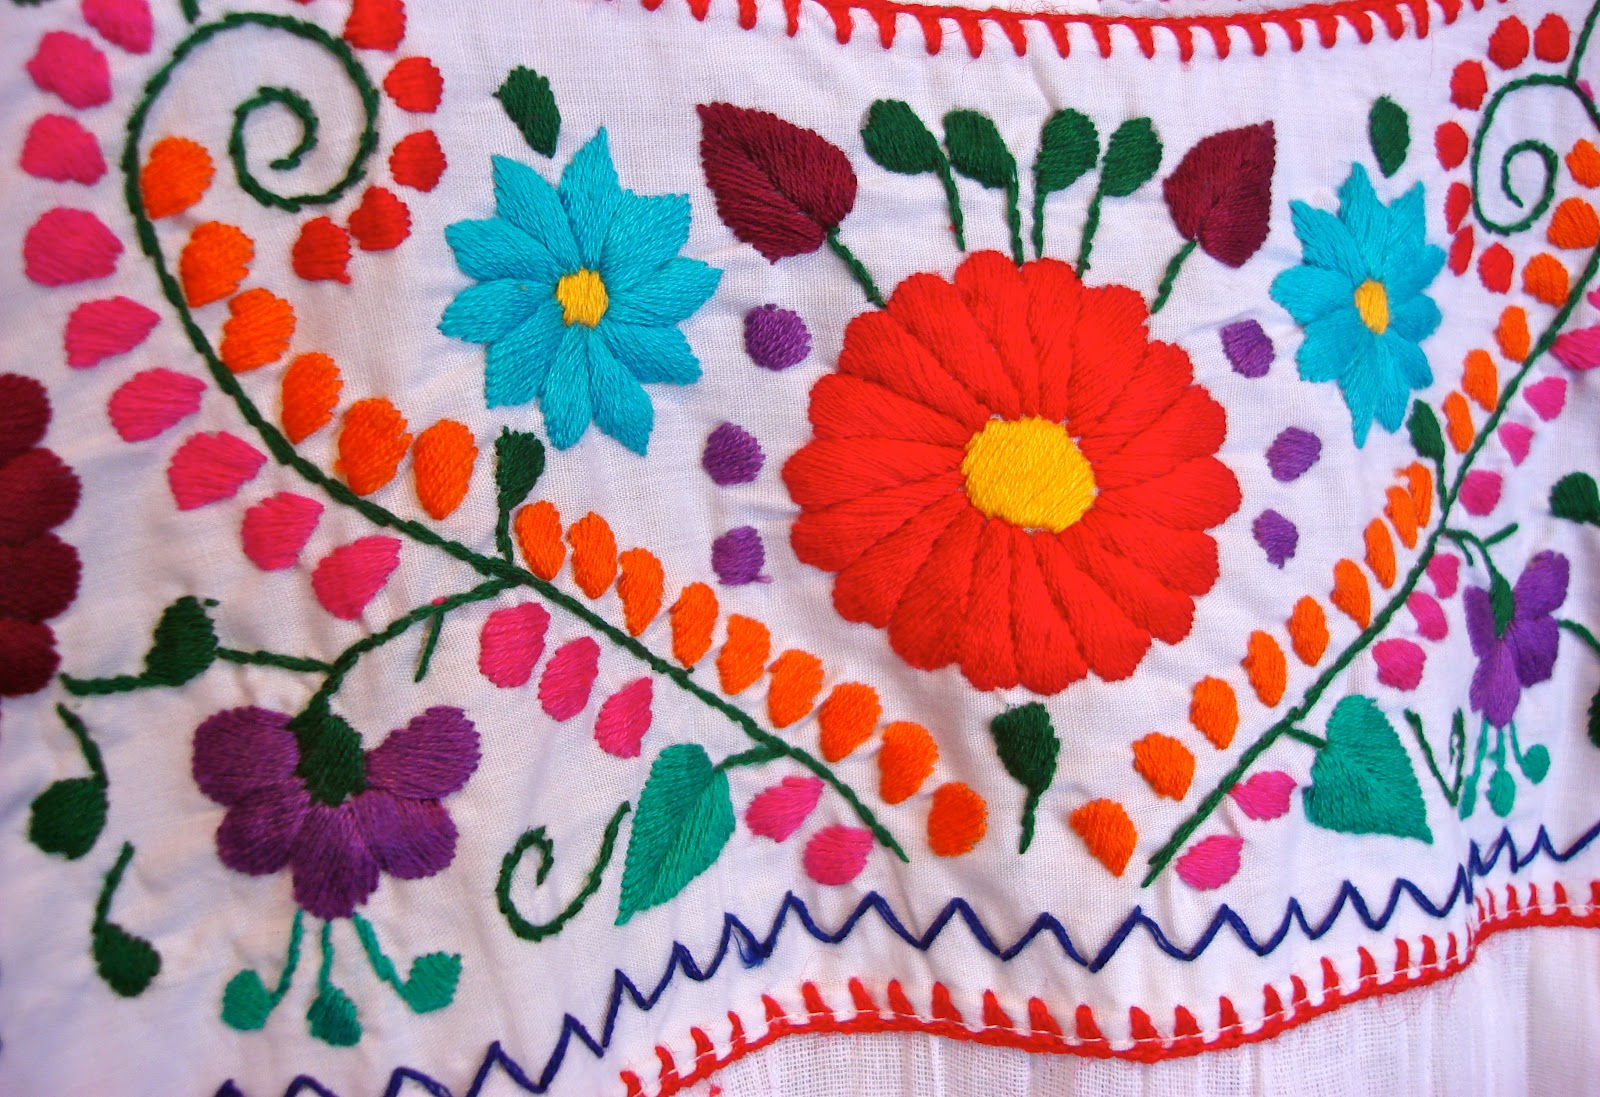 Learn the art of embroidery at an Open Arts Studio class. Photo: St. Matthew's Cathedral Arts